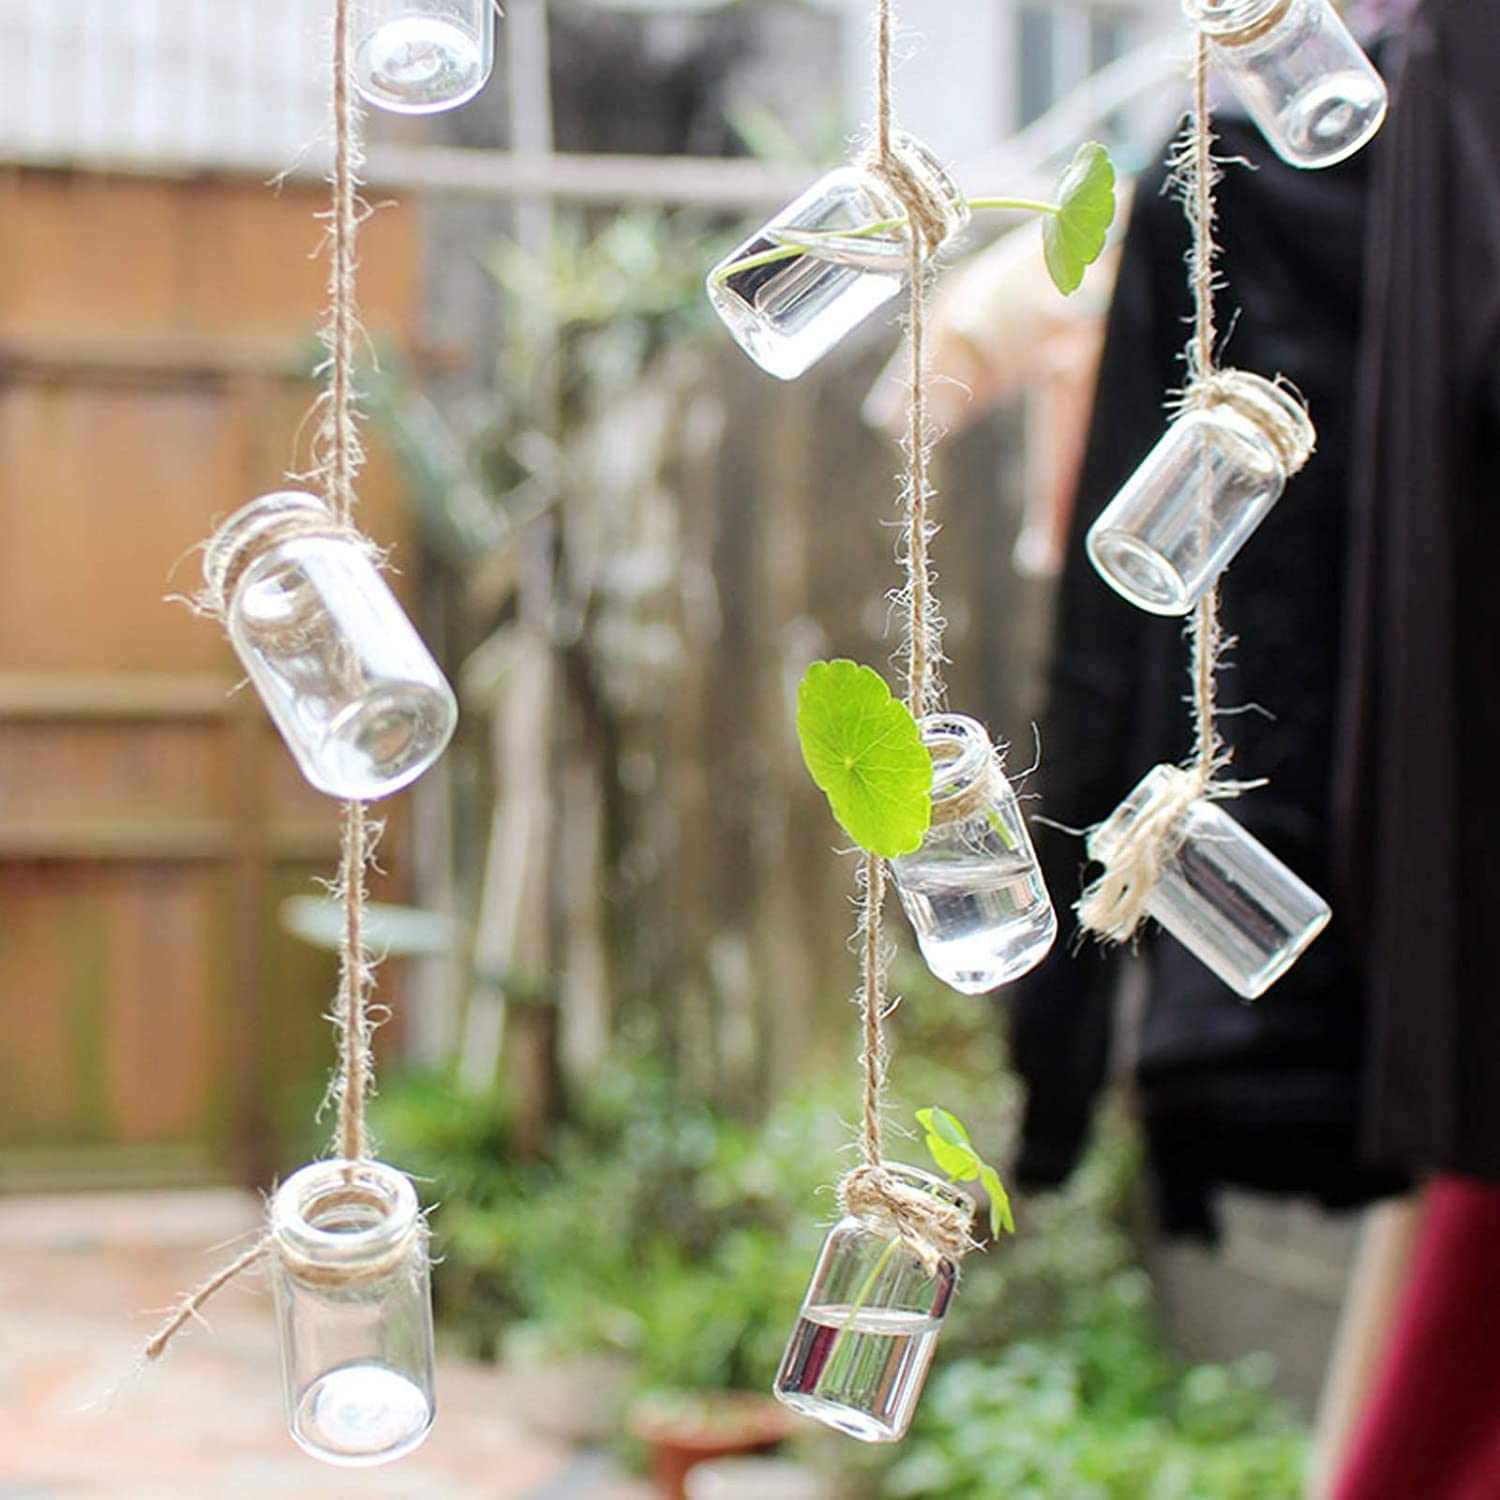 30 Pack Hanging Glass service Planter Air Holder Plant P Max 67% OFF Wall Terrarium